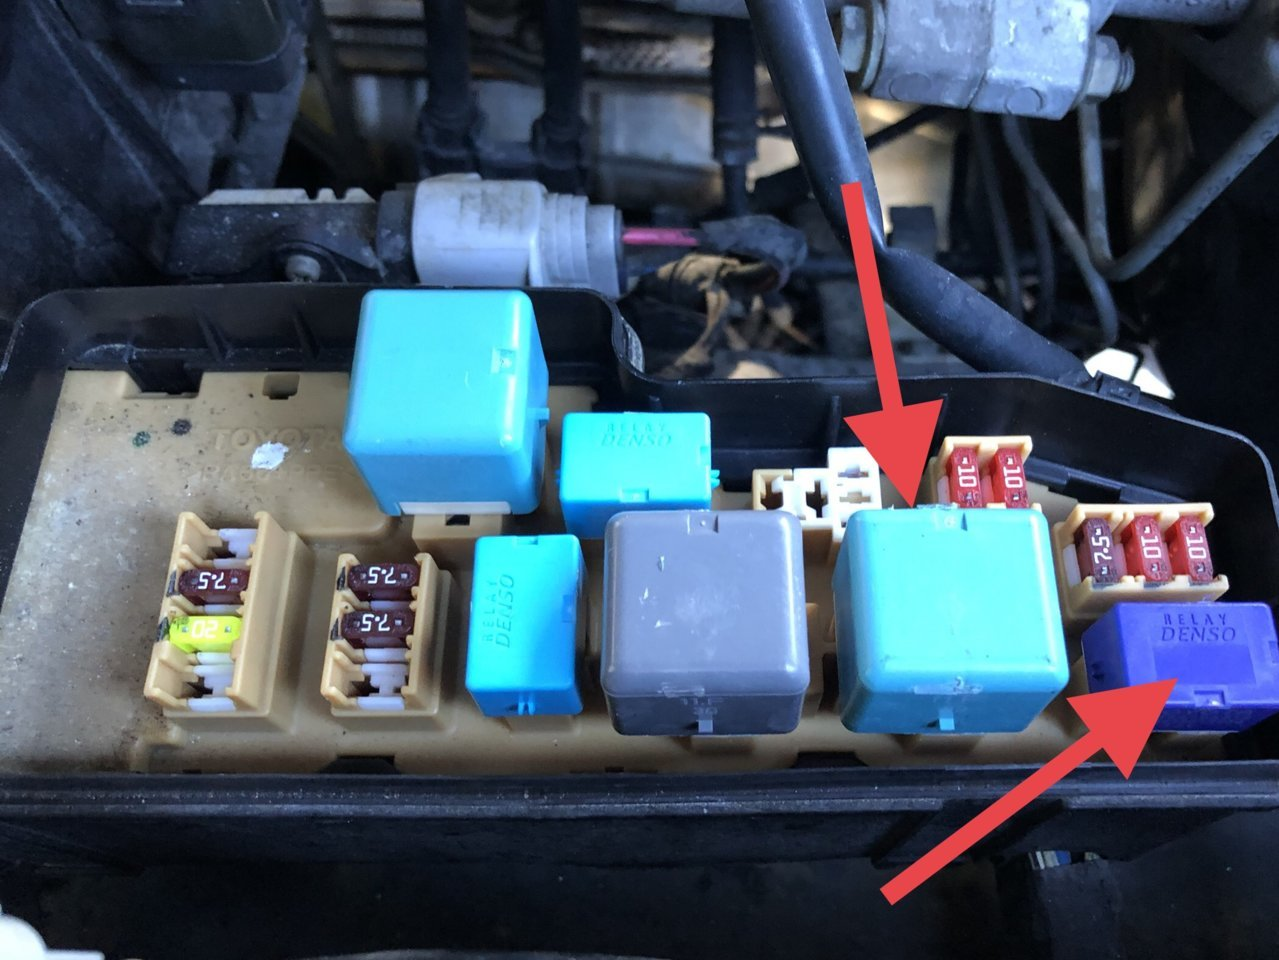 2005 Tundra Ran Fine Yesterday But Dead Today Toyota Forum Mini Cooper Fuse Box Clicking Img 0533